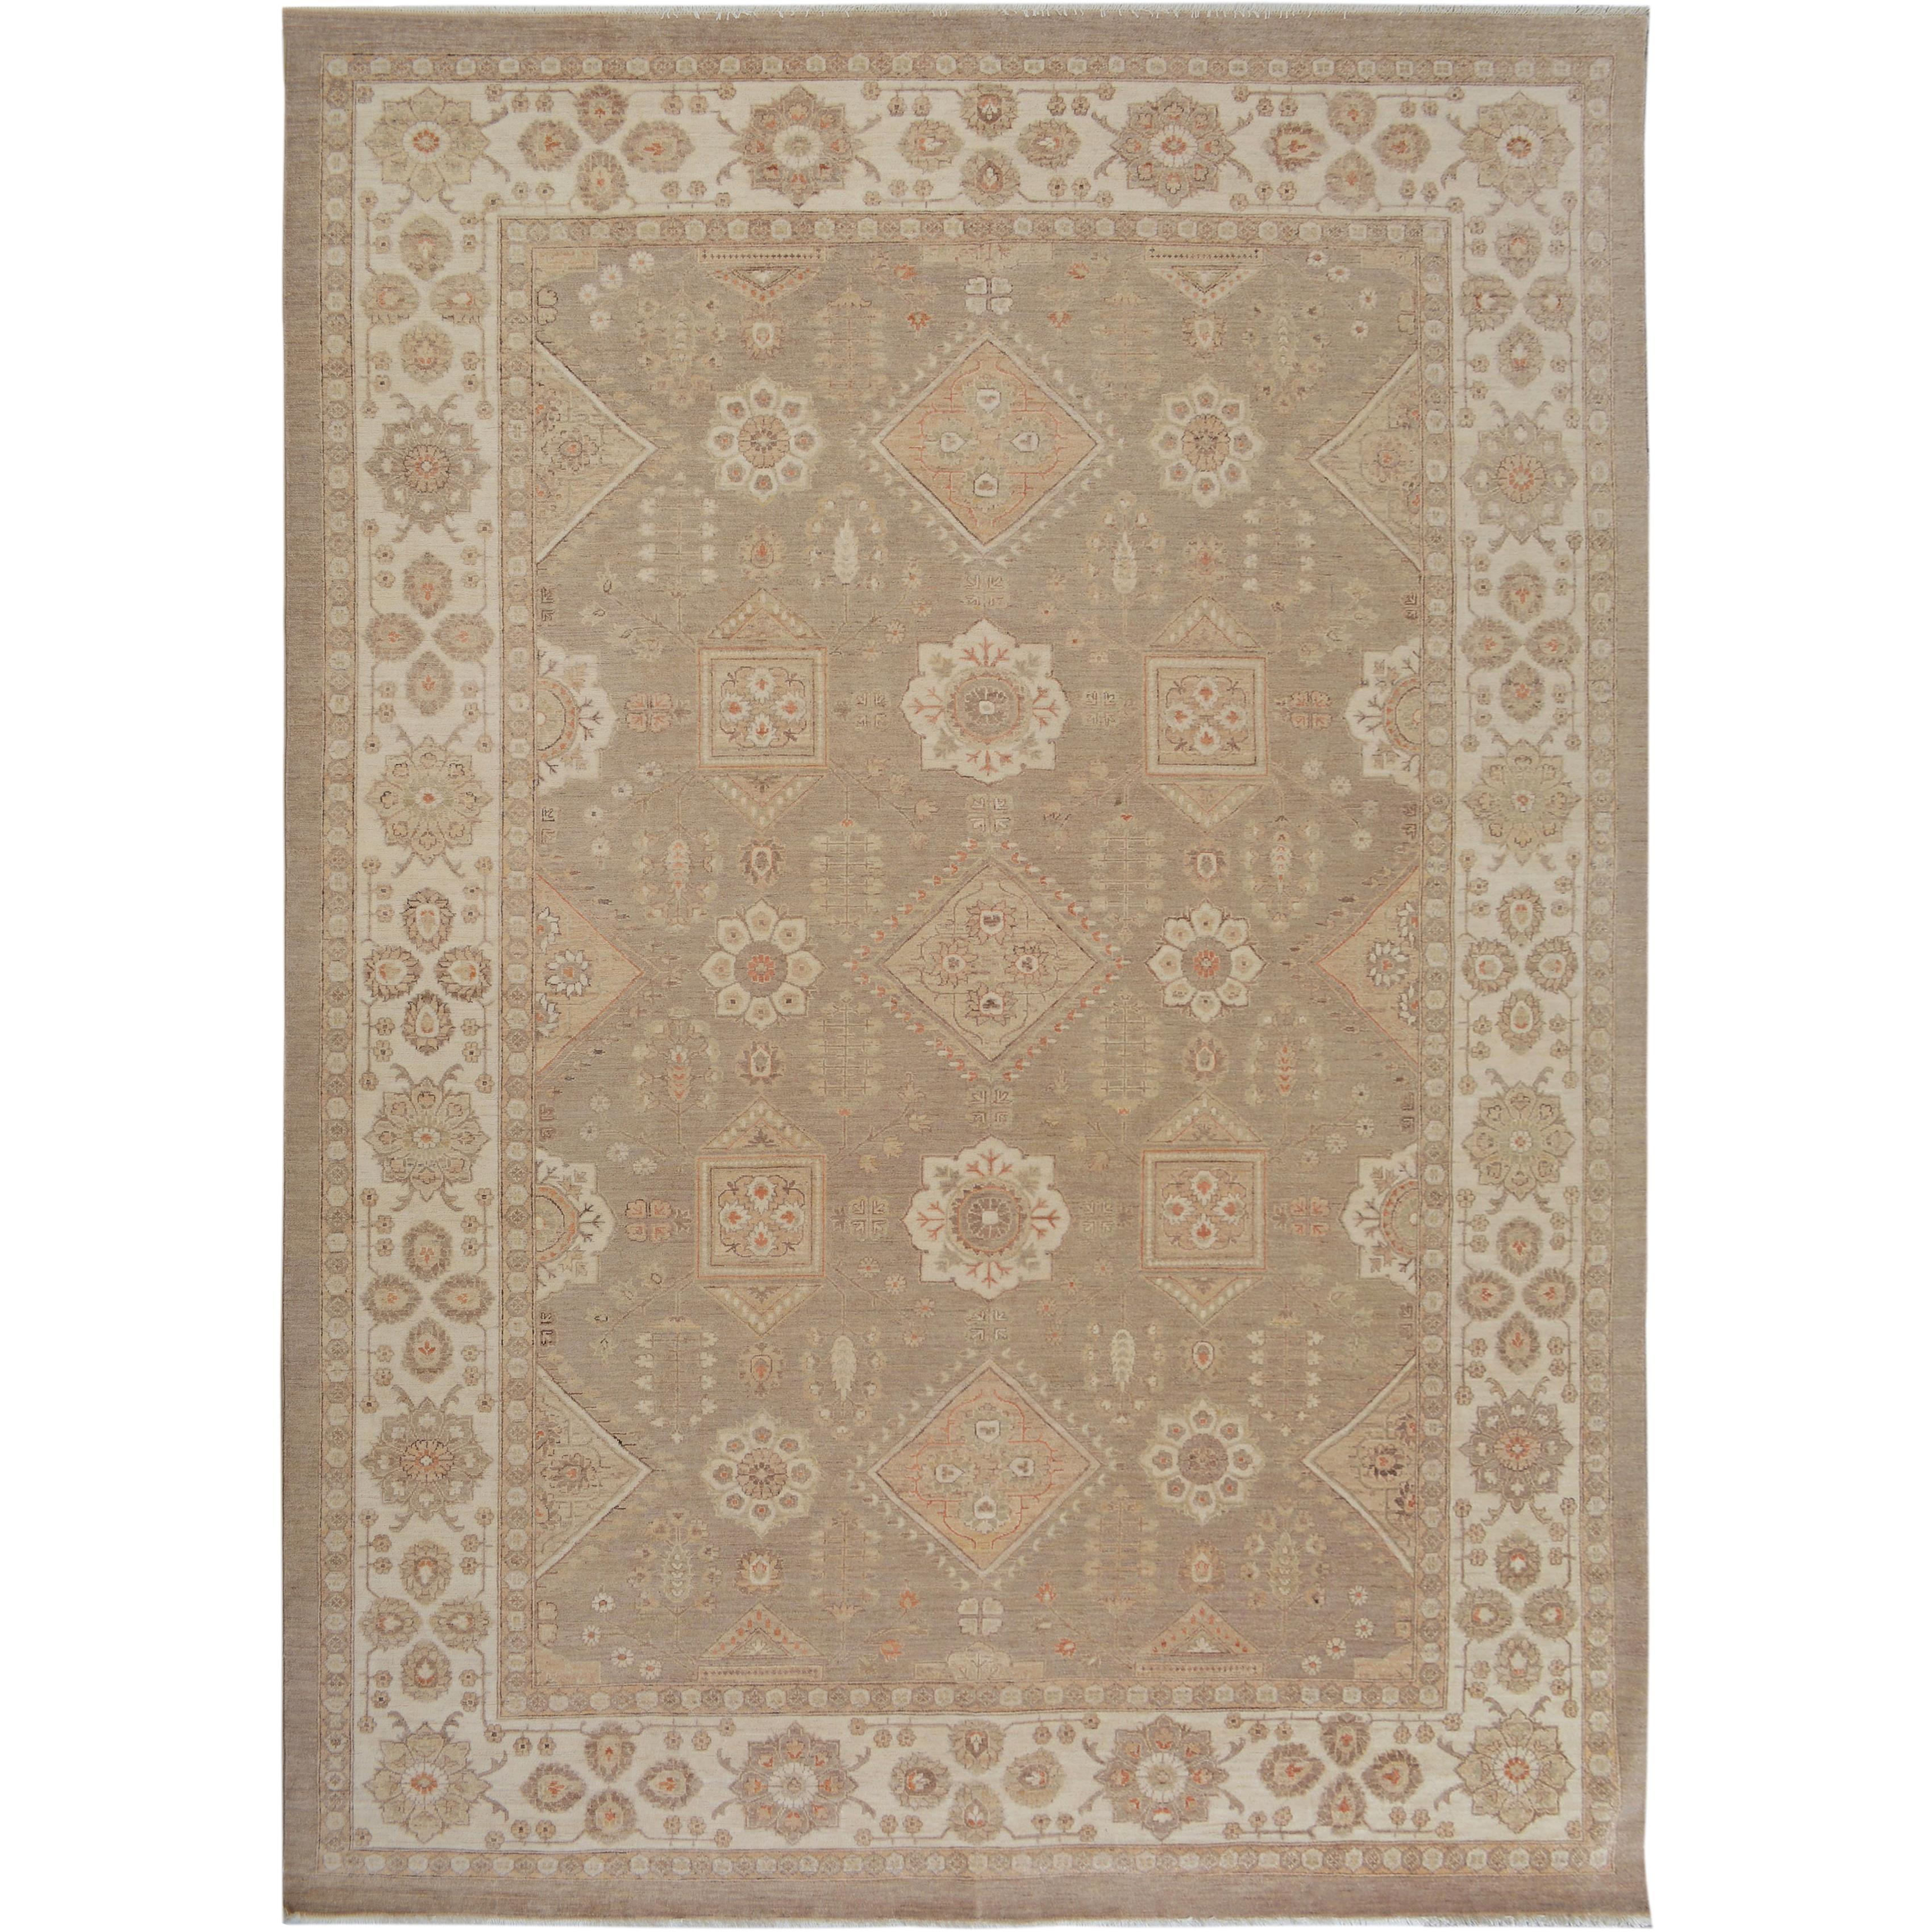 31282f9d1c6f Shop Arshs Fine Rugs Kafkaz Peshawar Clair Tan and Ivory Wool Hand-knotted  Rug (10 1x13 10) - On Sale - Free Shipping Today - Overstock.com - 16916570